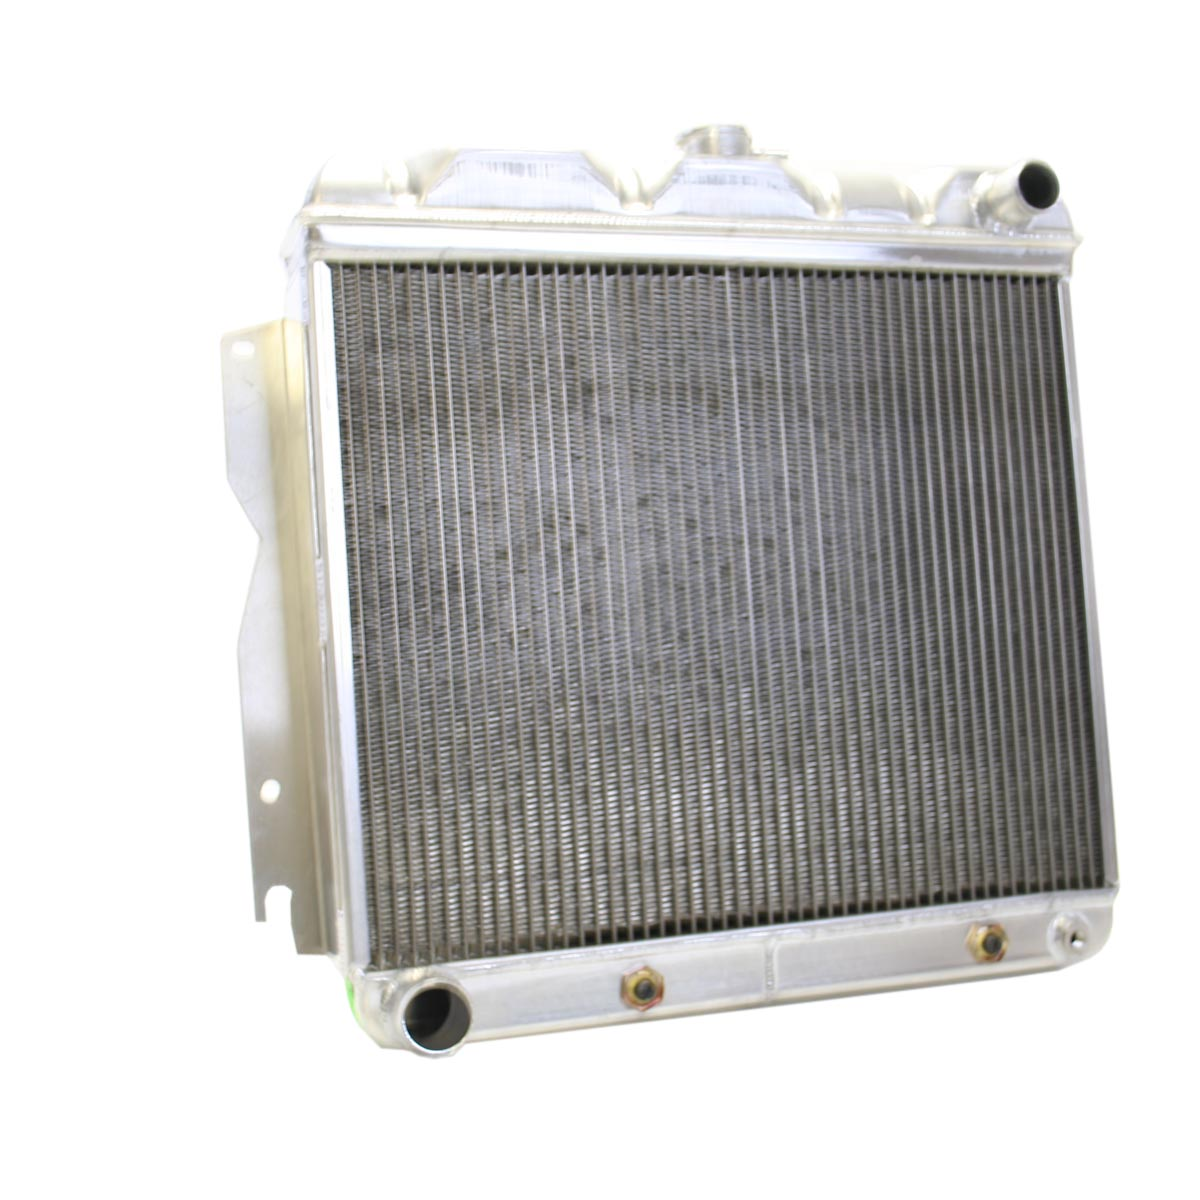 hight resolution of 63 plymouth belvedere griffin aluminum radiator part number 5 70024